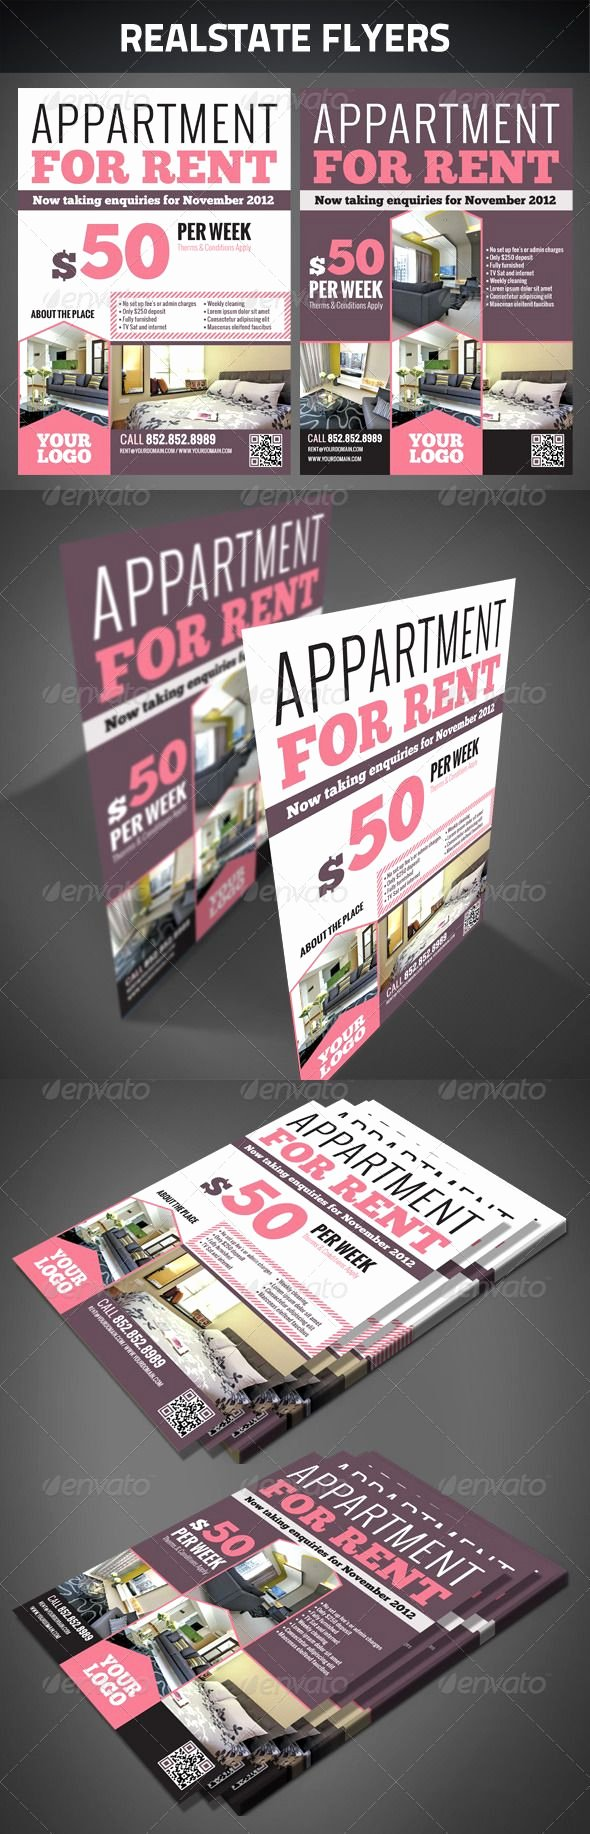 Room for Rent Flyers New Realestate Flyers Graphicriver Realestate Flyers Zip File